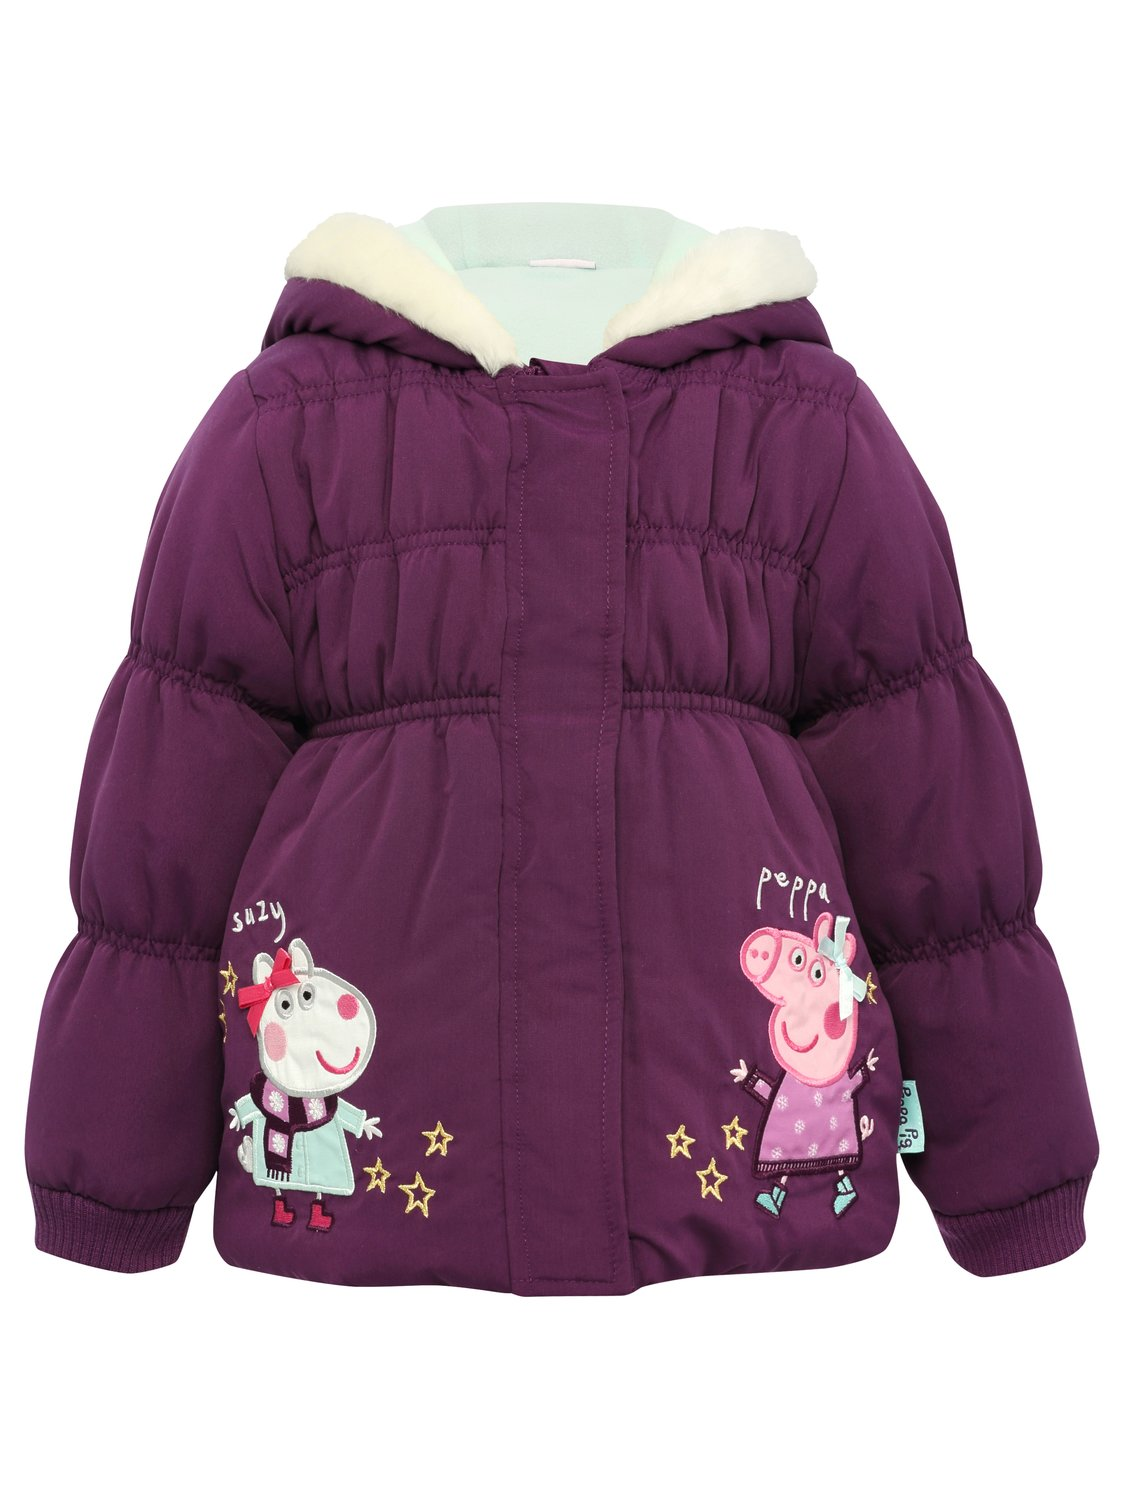 Peppa Pig and Suzi Character Embroidered Girls Long Sleeve Fleece Lined Hooded Padded Coat   Purple